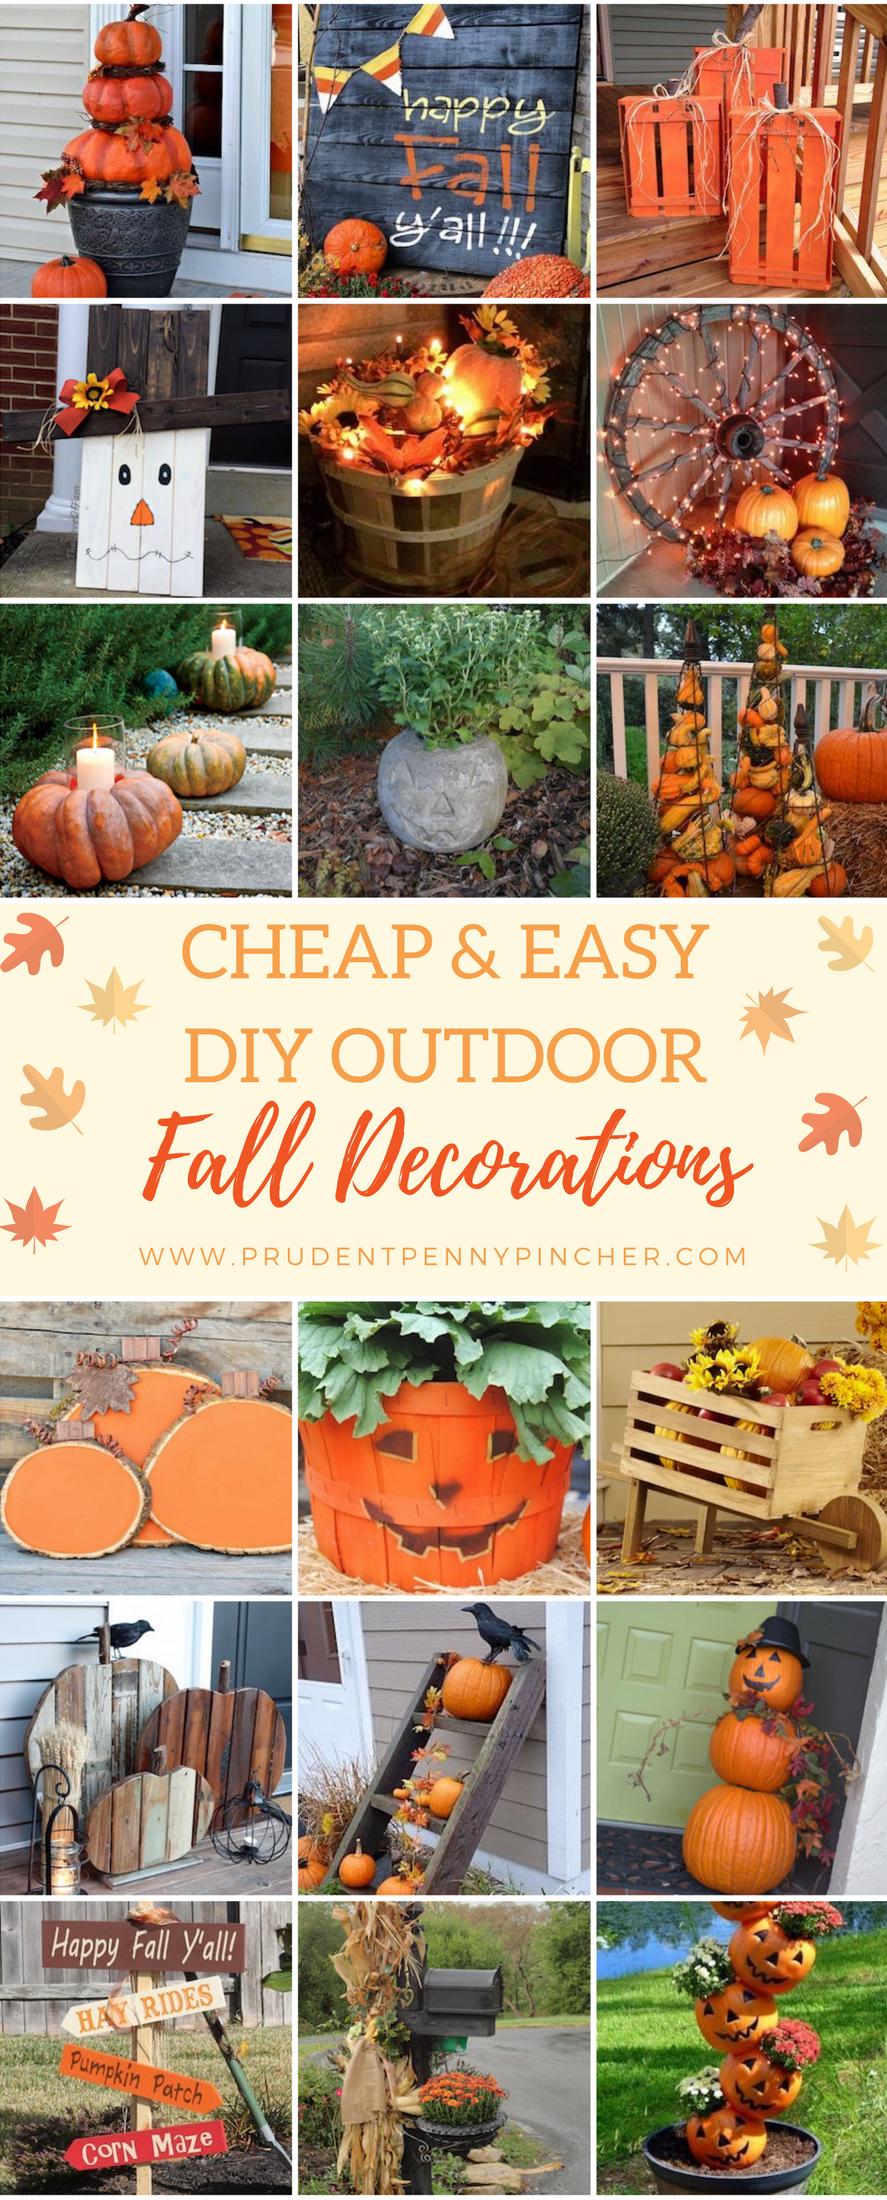 50 Cheap and Easy DIY Outdoor Fall Decorations - Prudent ... on Easy Diy Garden Decor id=42182